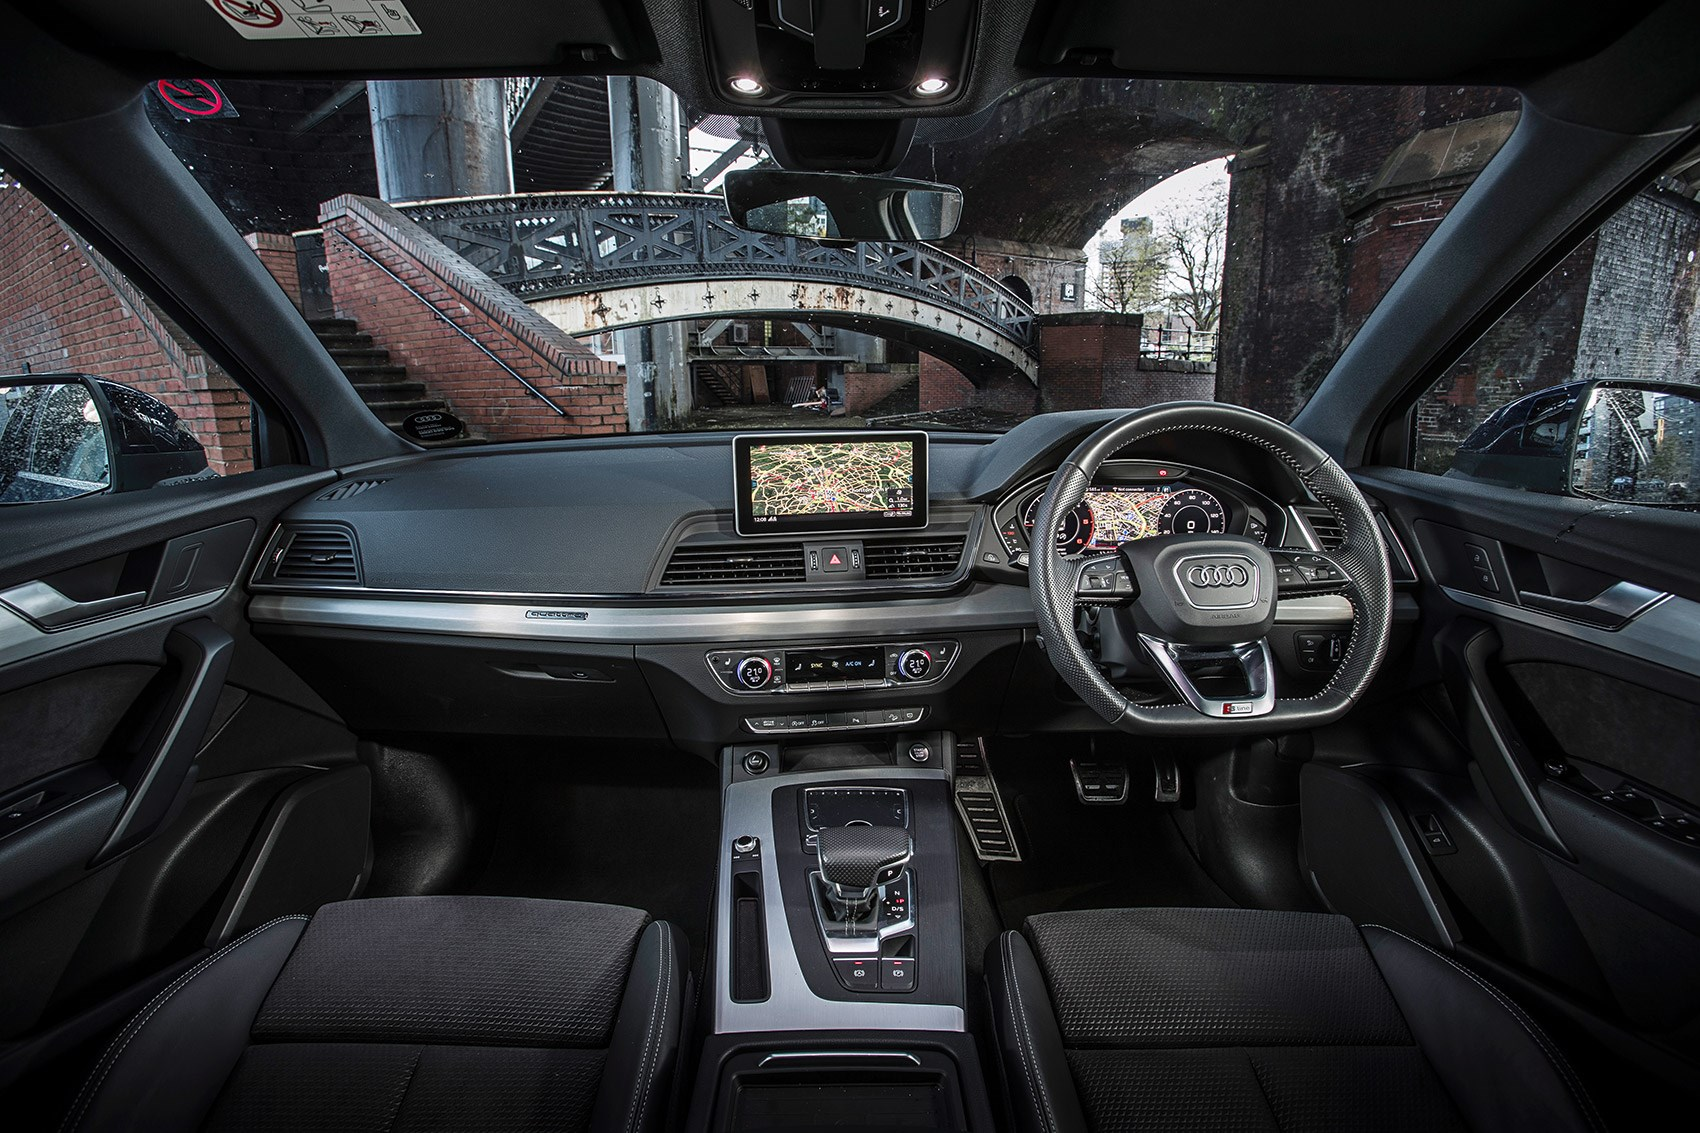 We Decide 2018u0027s Best Premium SUV Audi Q5 Cabin: Materials And Fit And  Finish Precision Executed ...